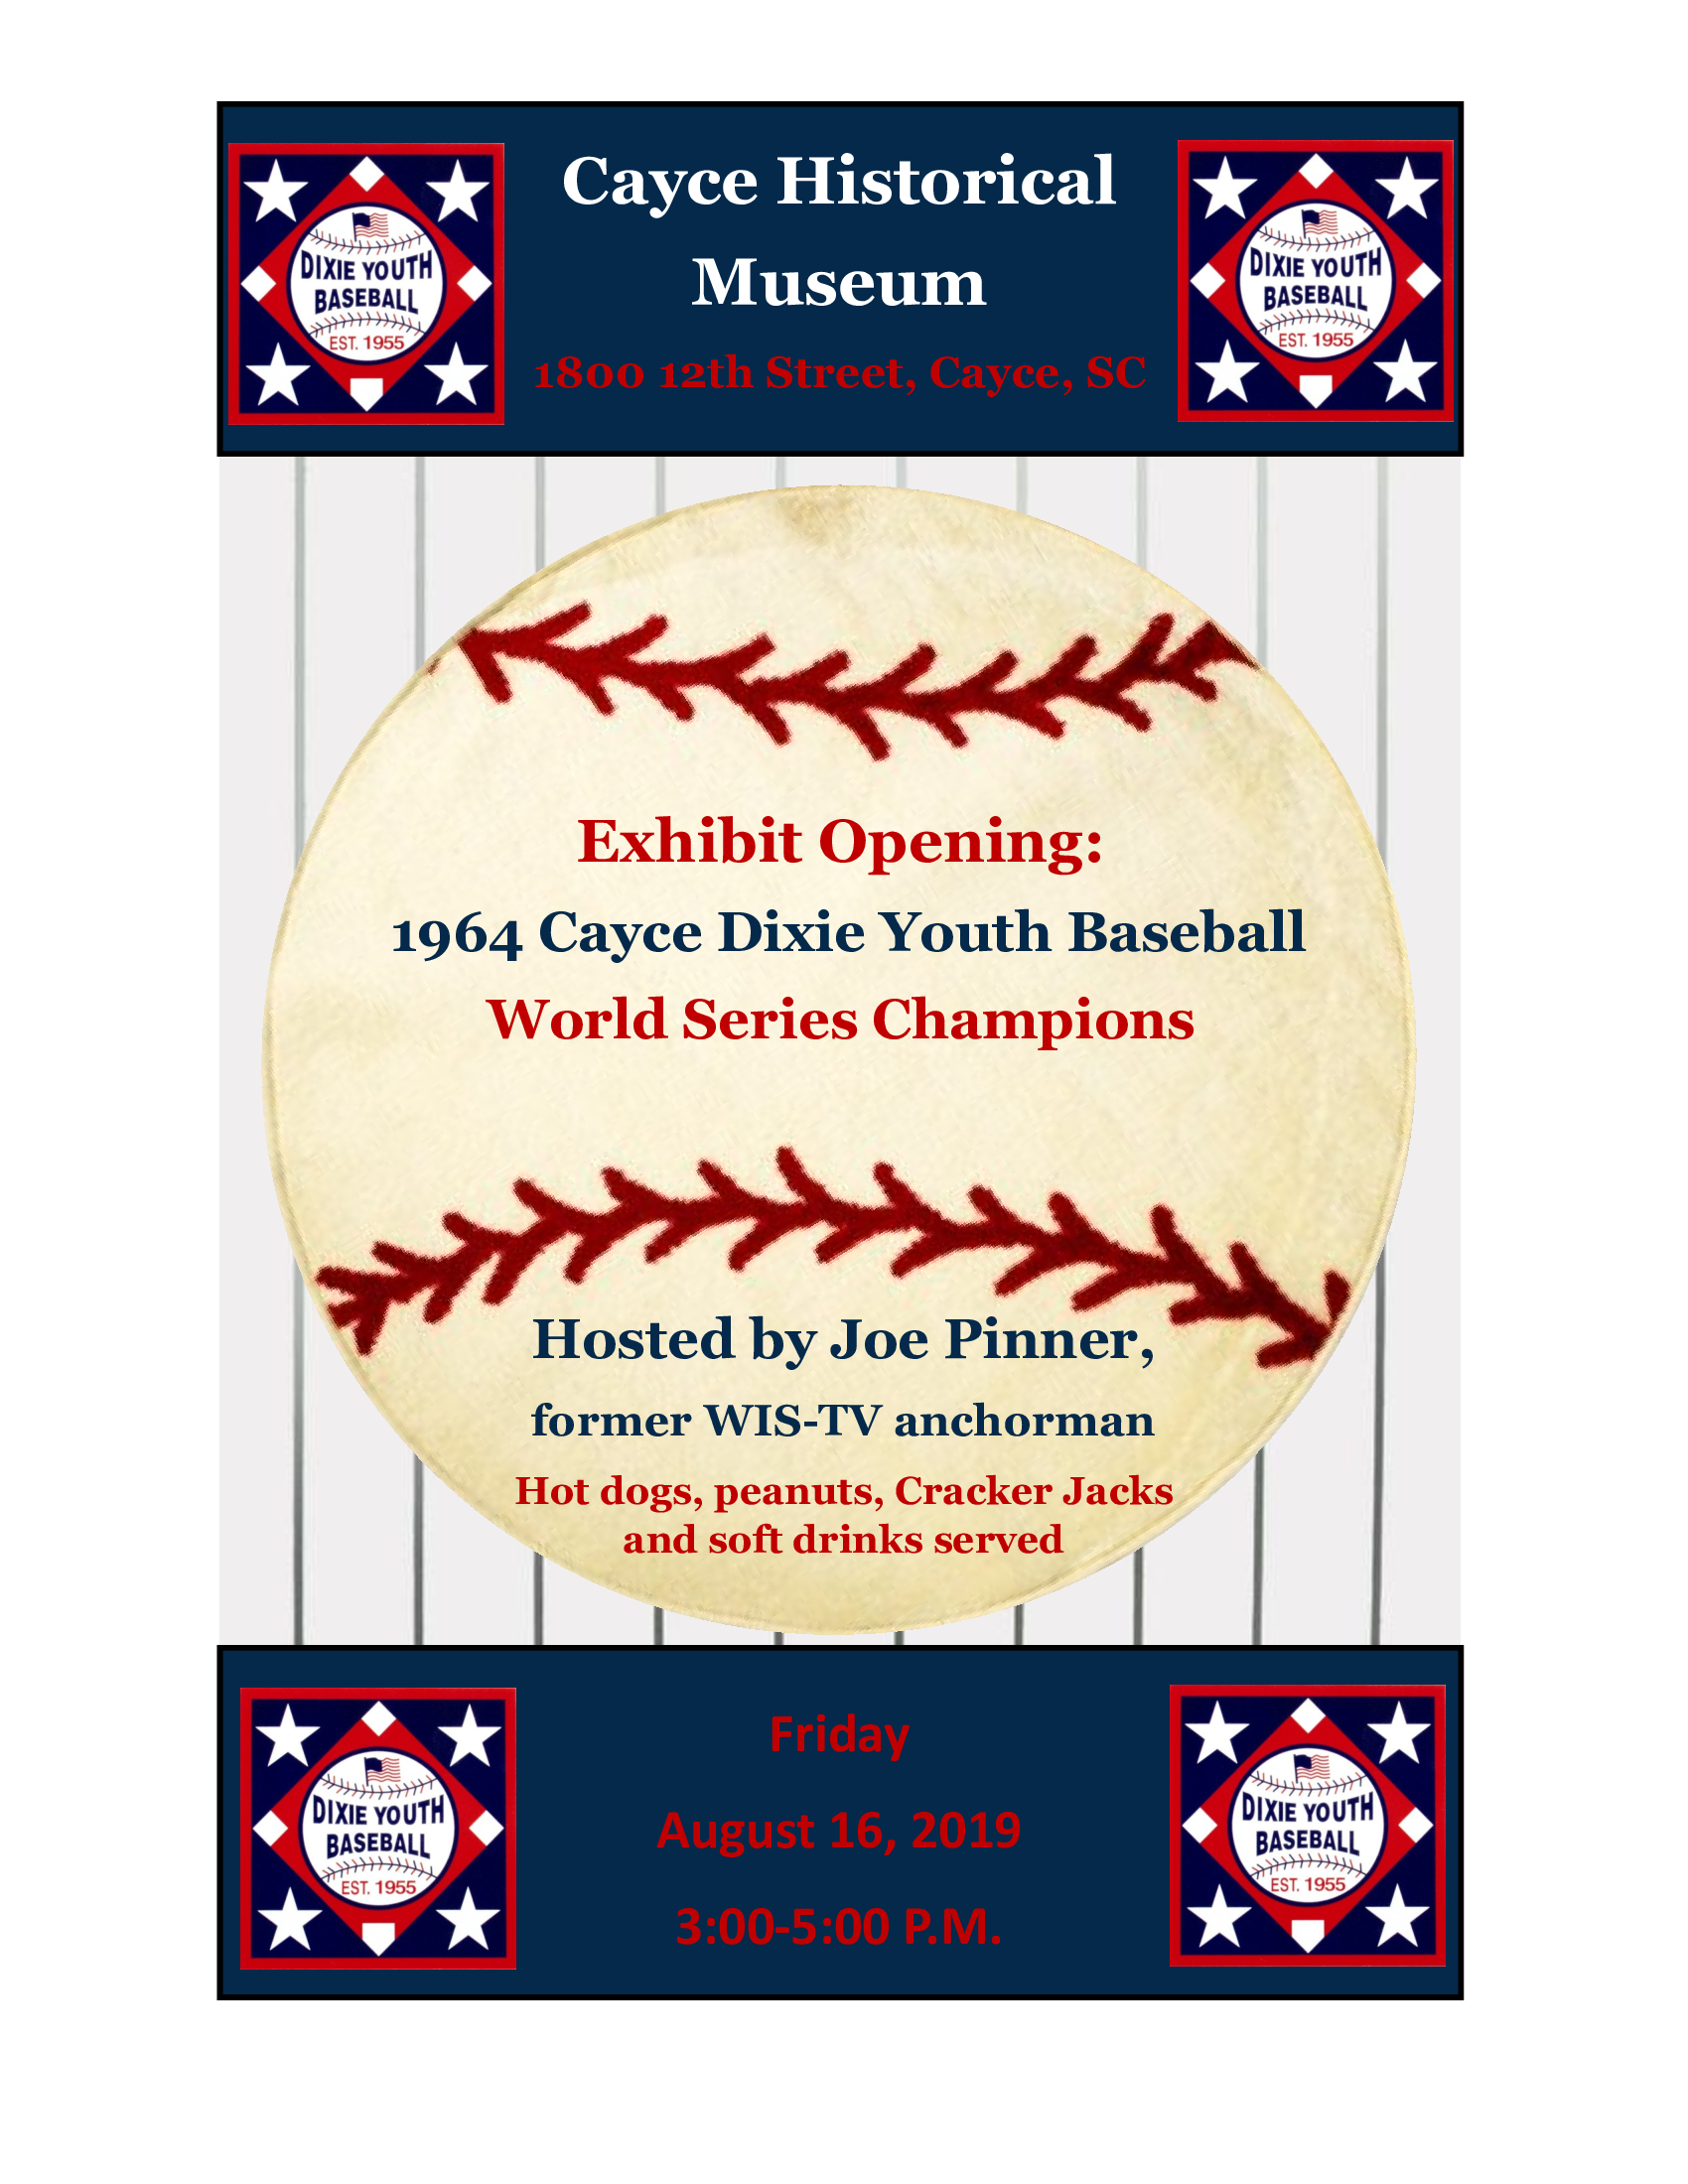 Cayce Historical Museum announces details for 1964 Cayce